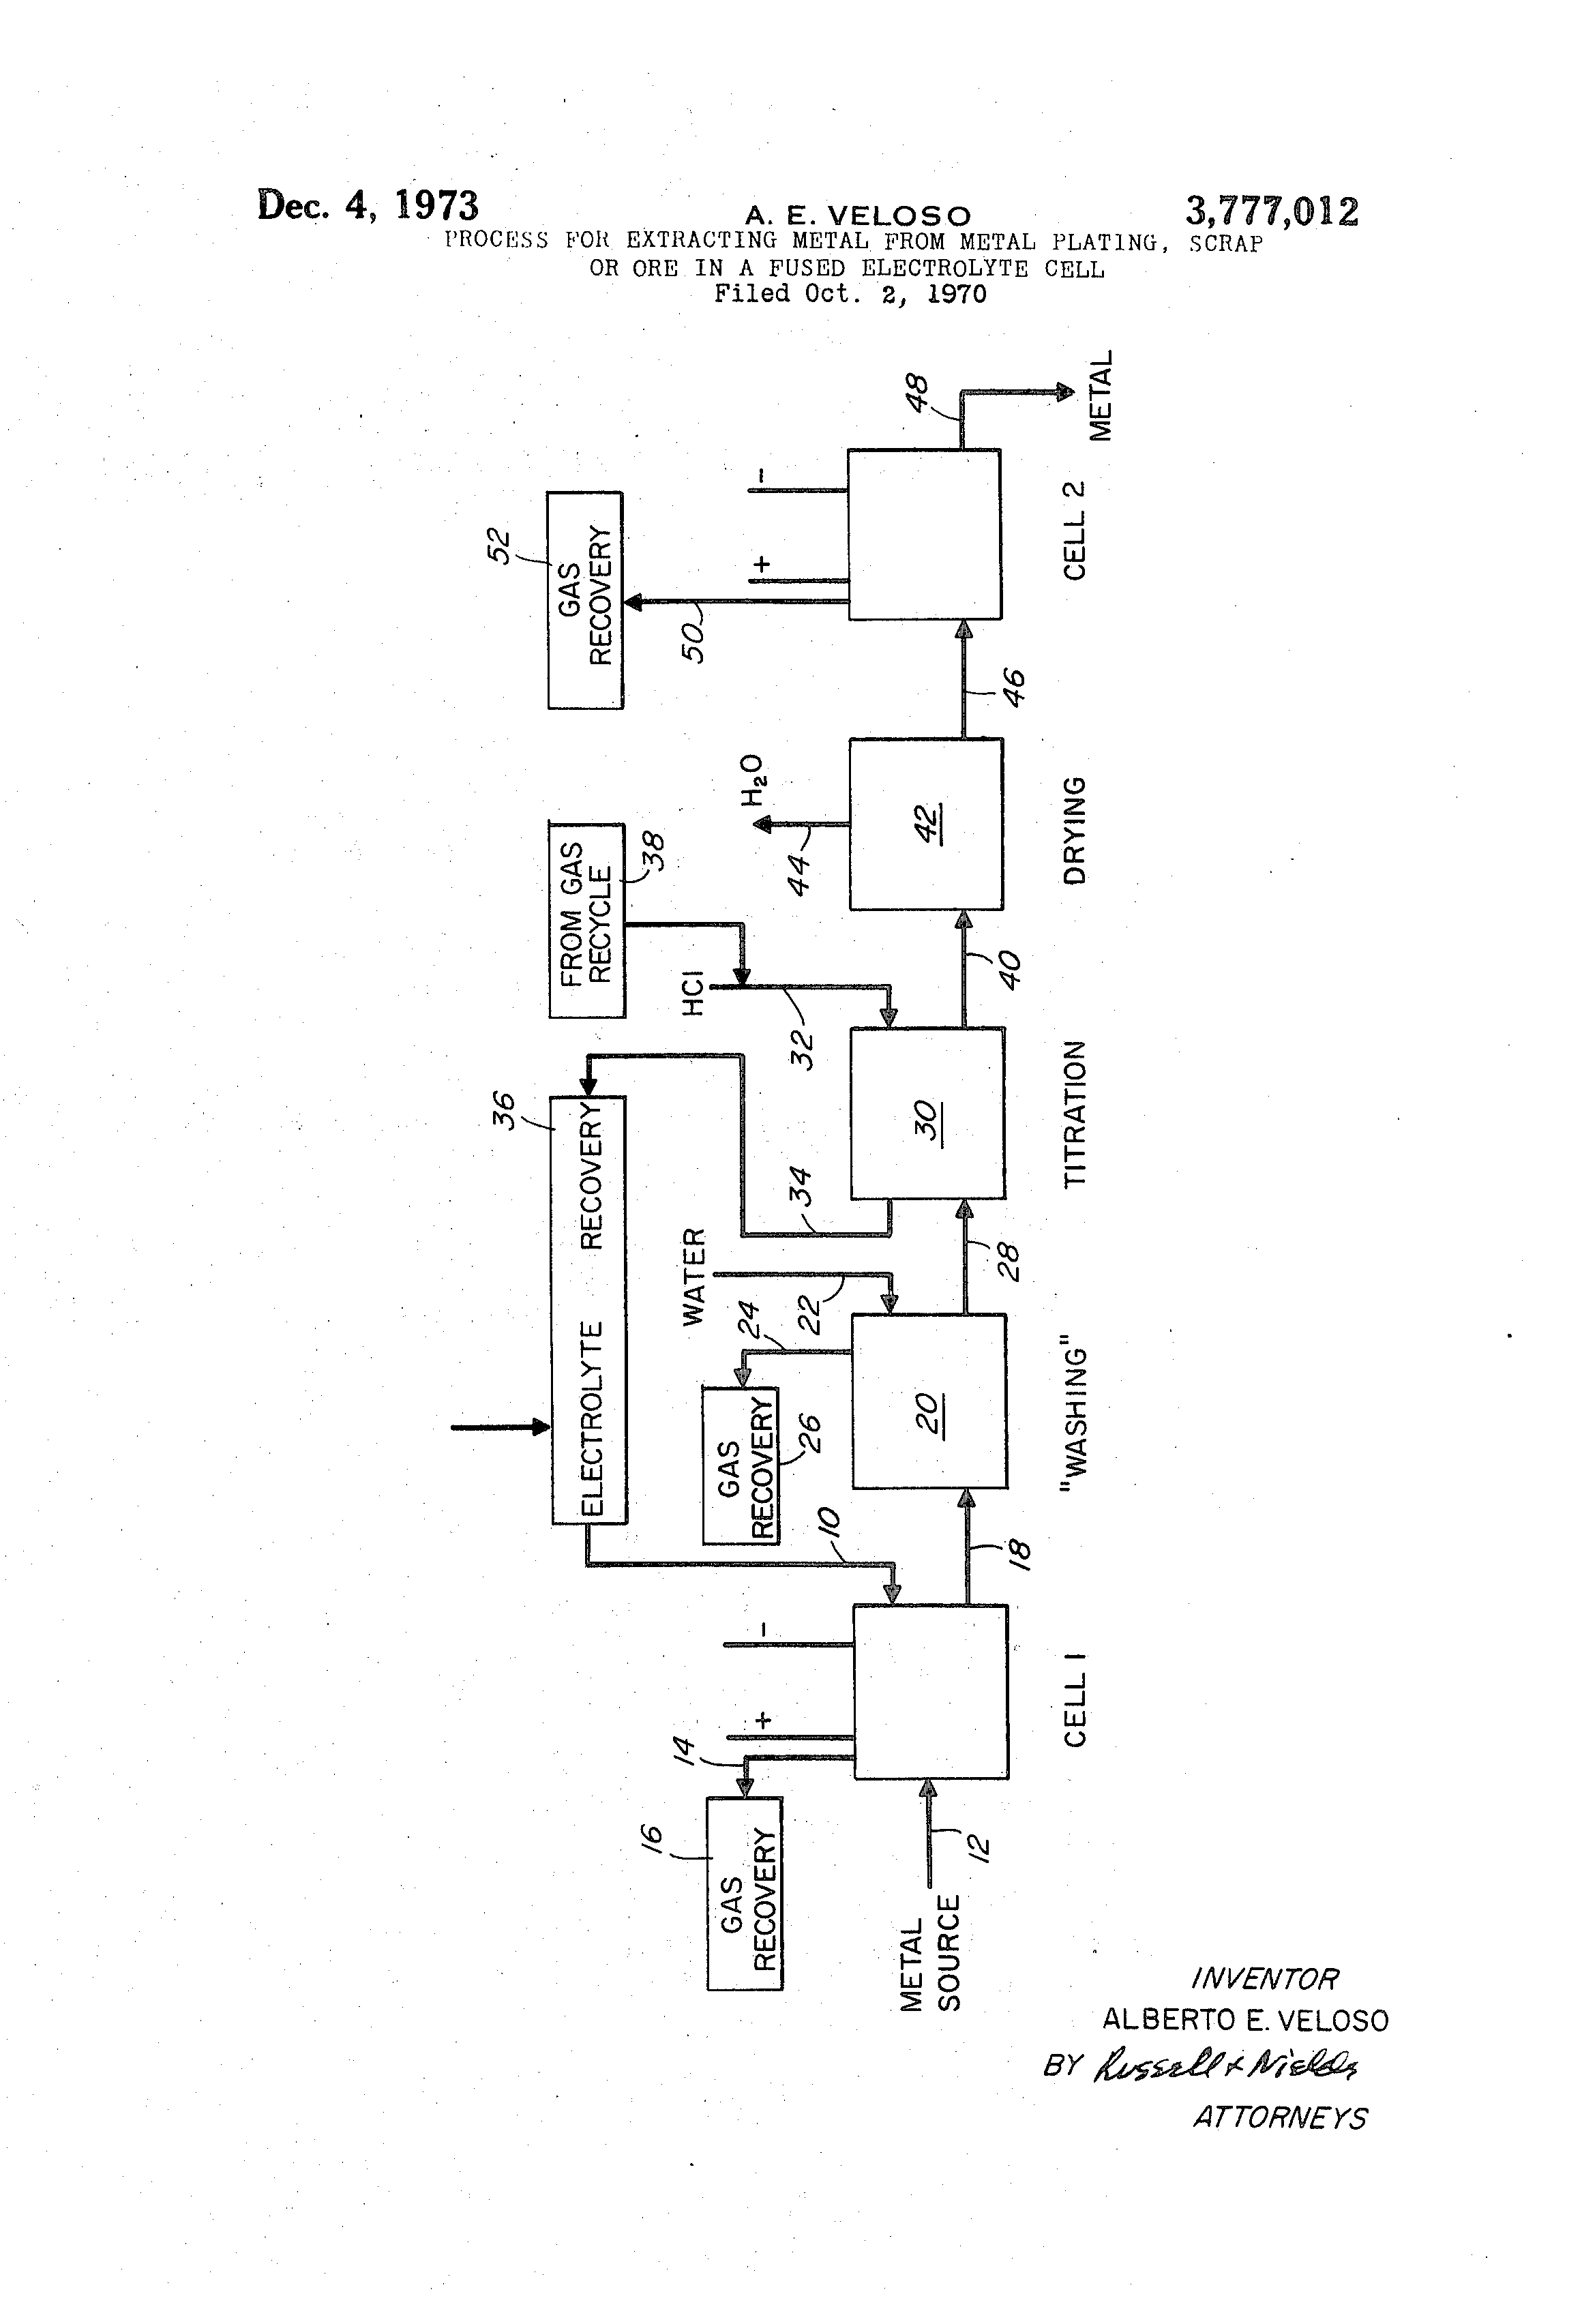 Brevet US3777012 - Process for extracting metal from metal plating